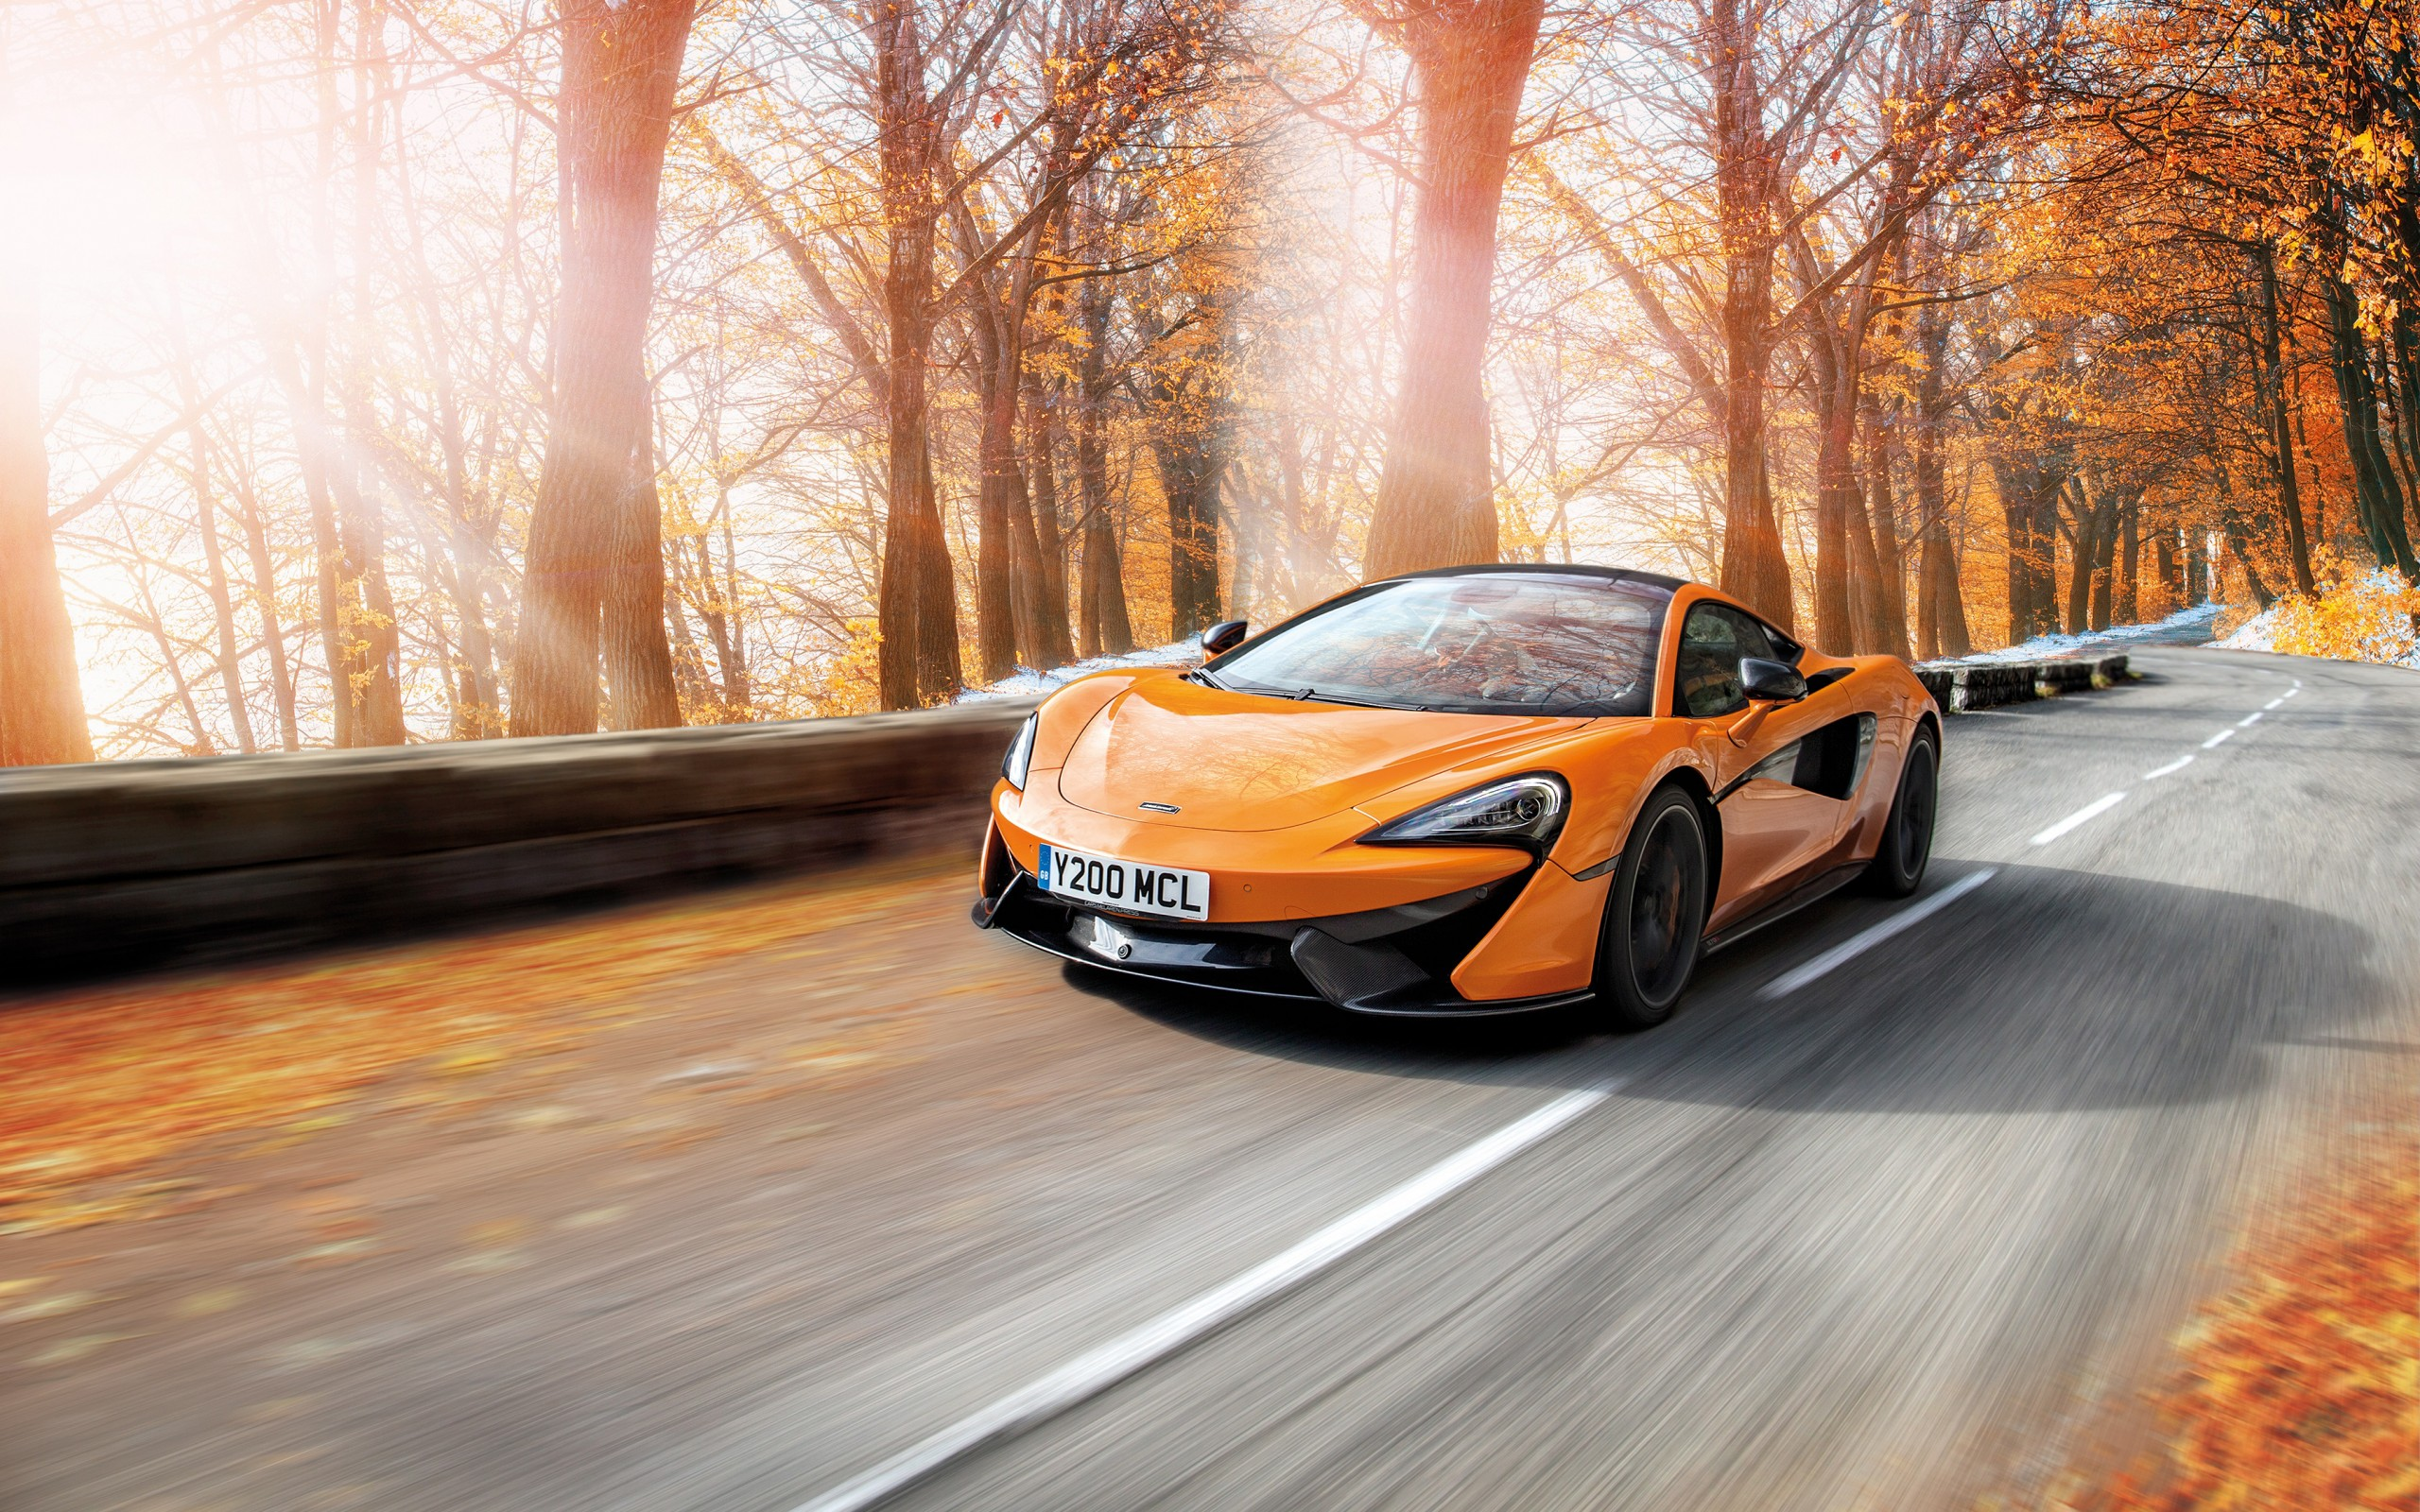 Download McLaren Cars Full HD Wallpaper for Desktop and Mobiles